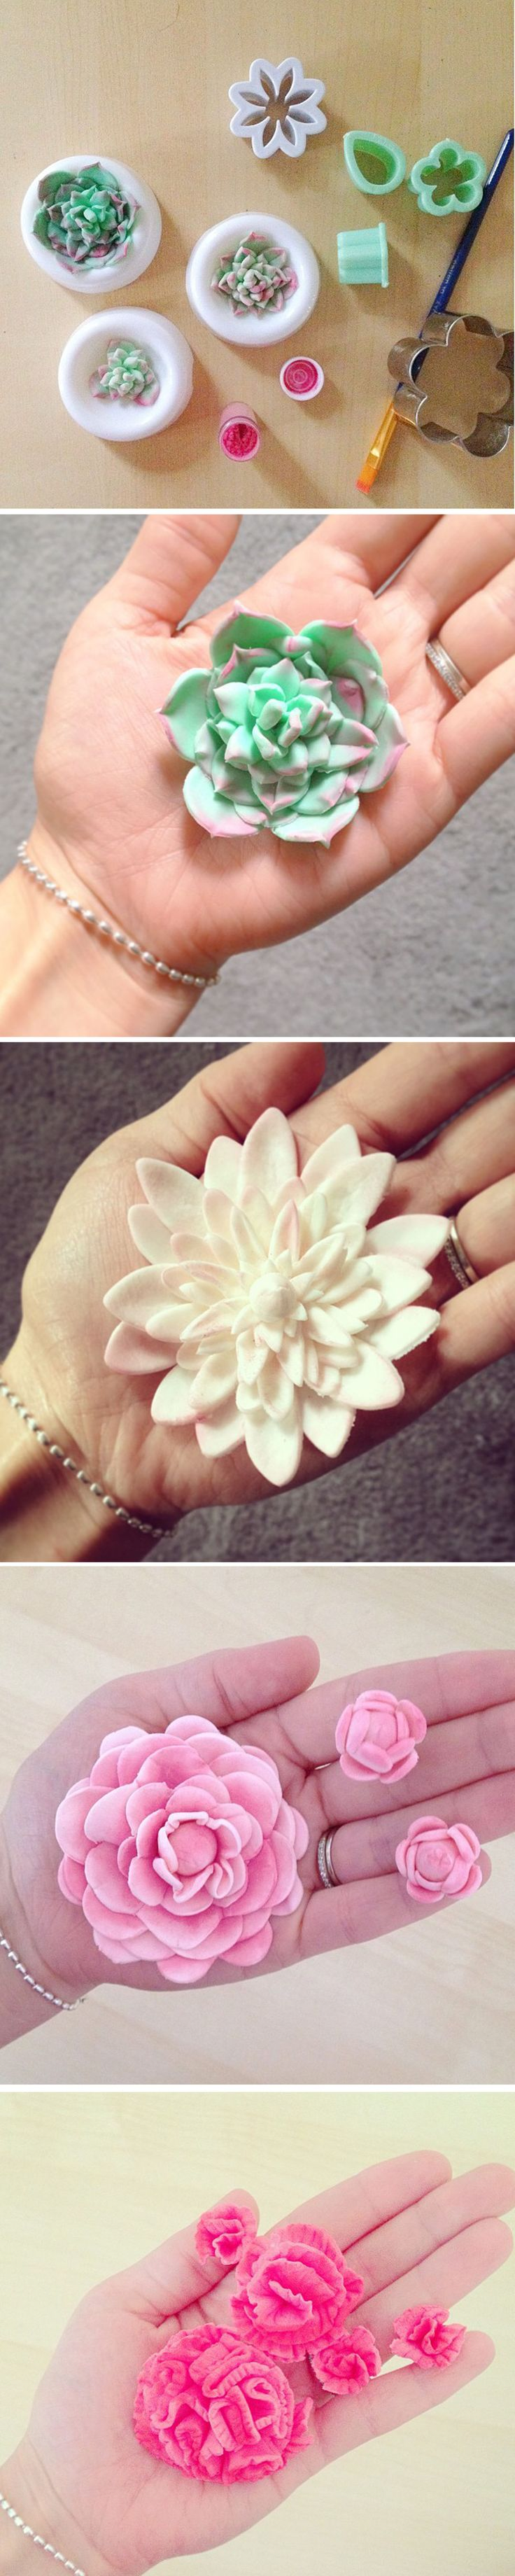 """""""Gumpaste flowers - dahlia's, succulents, celosia, etc. Gumpaste holds up much better for these than fondant. Don't make sugar flowers out of fondant!"""" - that last one looks like a brain. :o"""